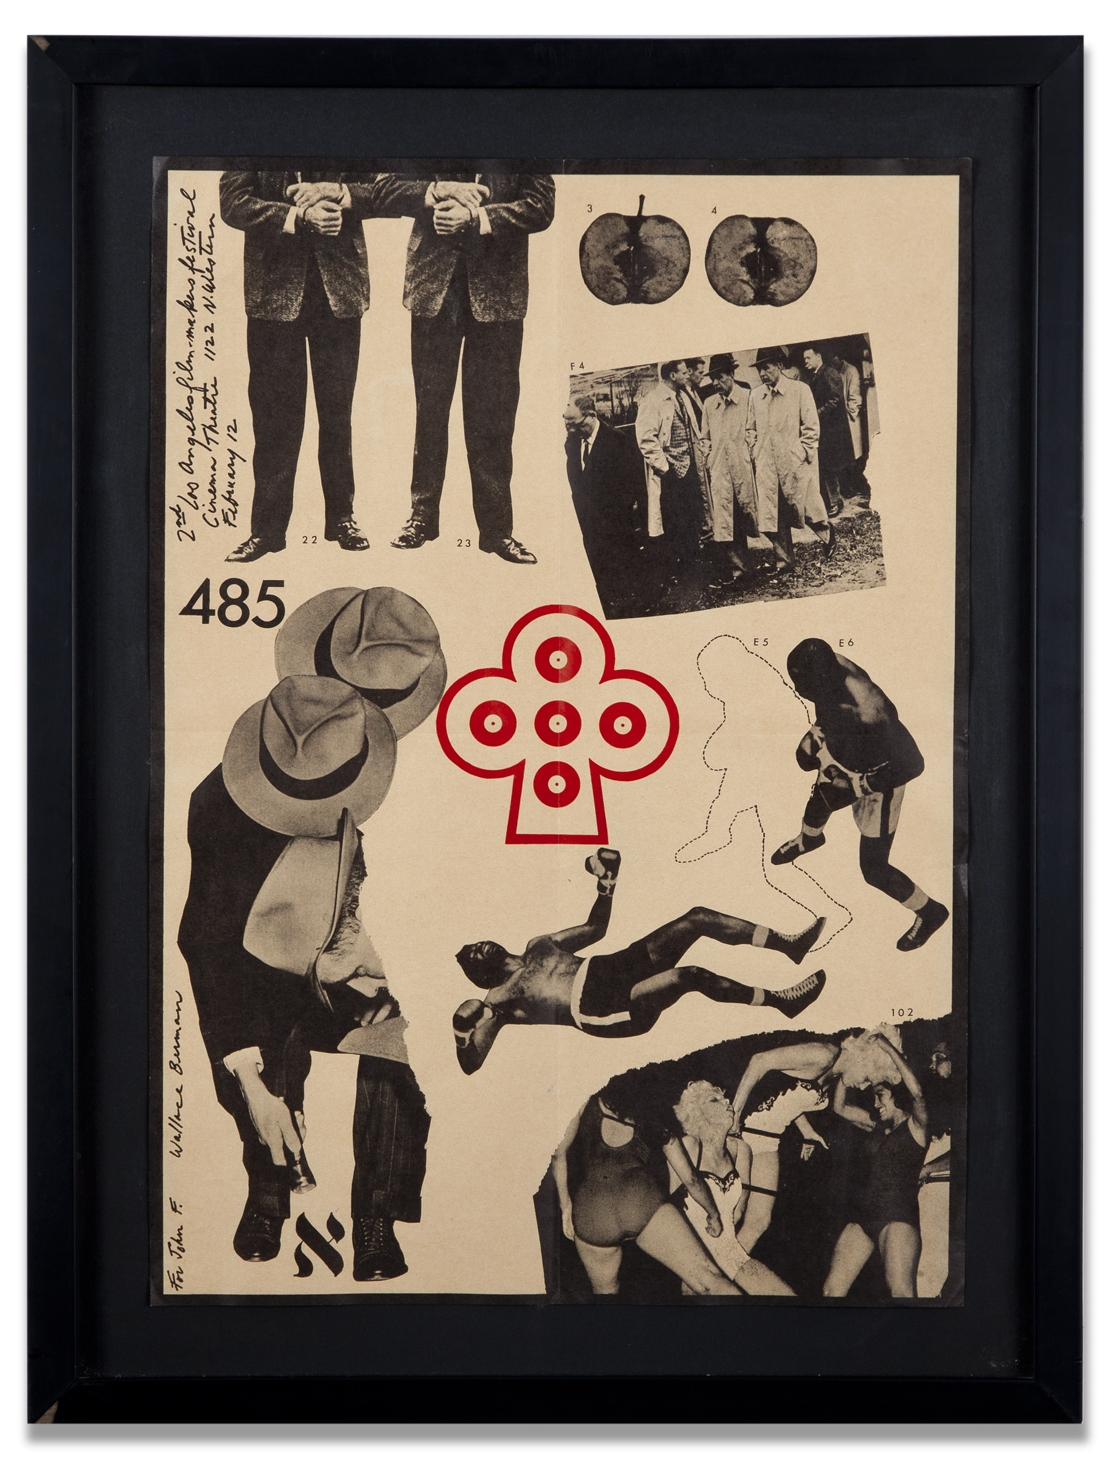 """Wallace Berman, """"Untitled (2nd Annual LA Filmmakers Festival),"""" 1963, poster, 17 1/2 x 12 inches"""